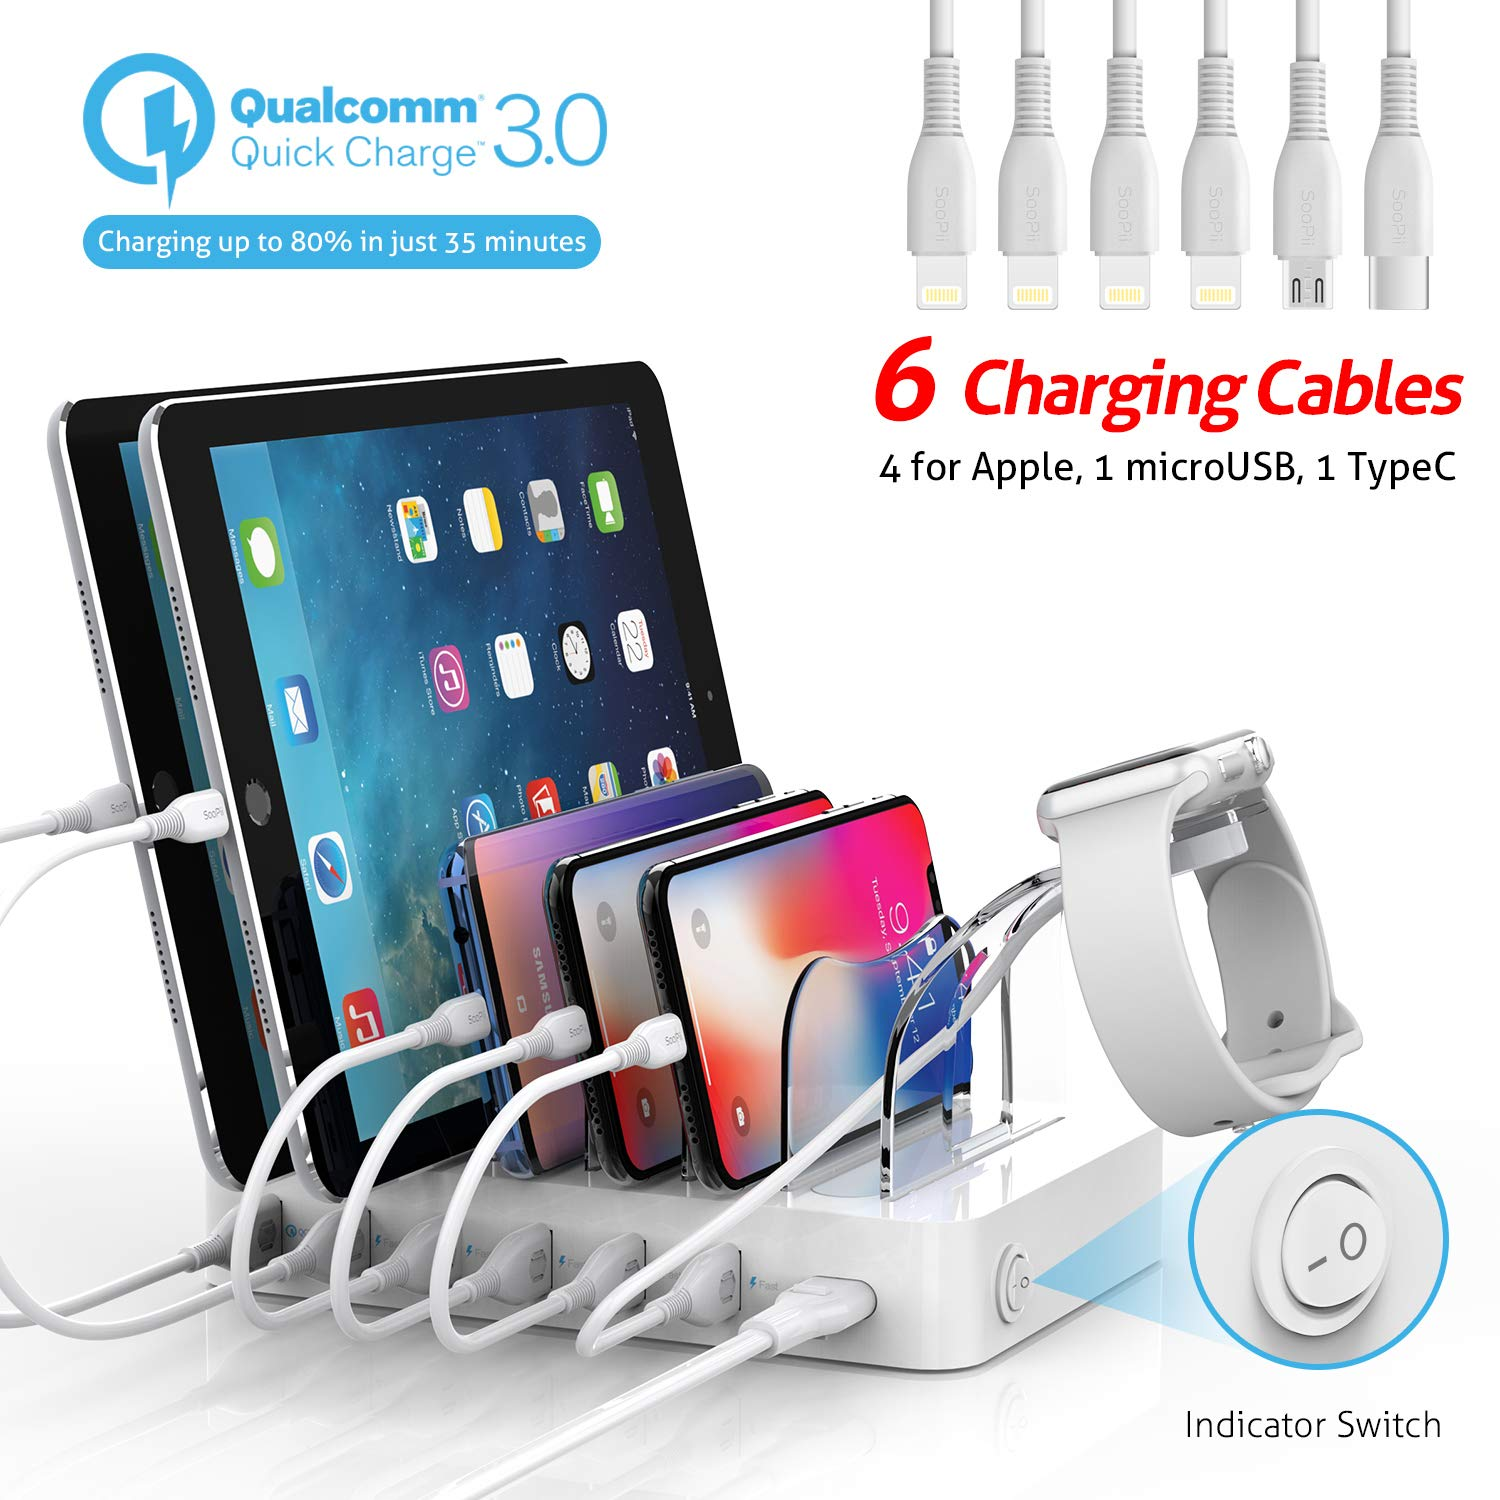 Soopii Quick Charge 3.0 60W/12A 6-Port USB Charging Station Organizer for Multiple Devices, 6 Short Mixed Cables Included, I Watch Holder,for Phones, Tablets, and Other Electronics,White by Soopii